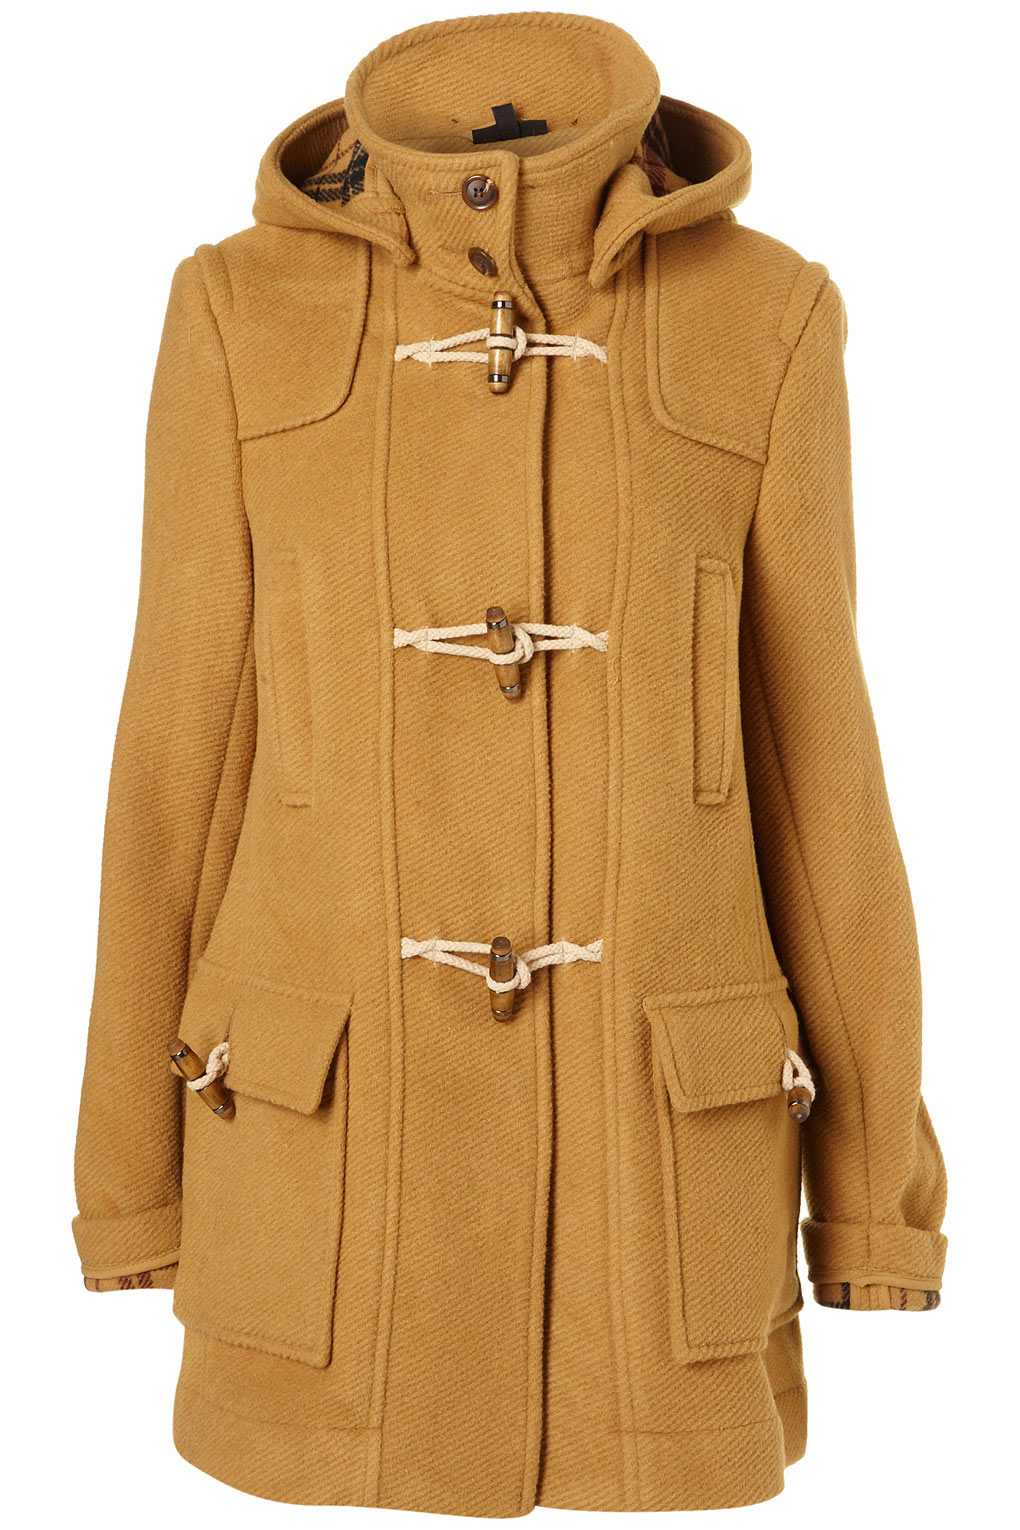 Topshop Bound Seam Duffle Coat in Yellow | Lyst